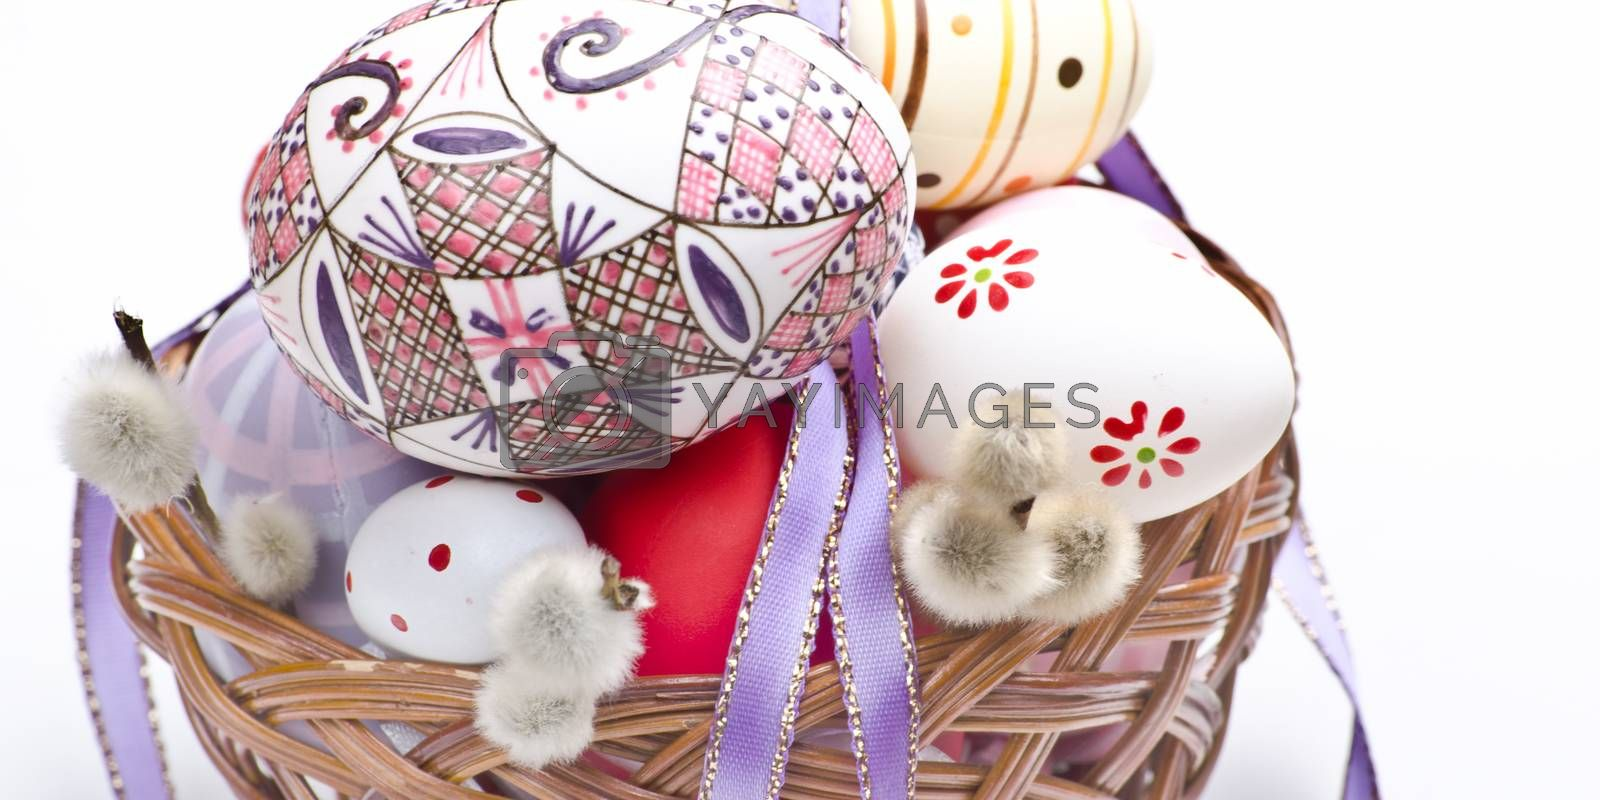 happy easter traditions in the spring season